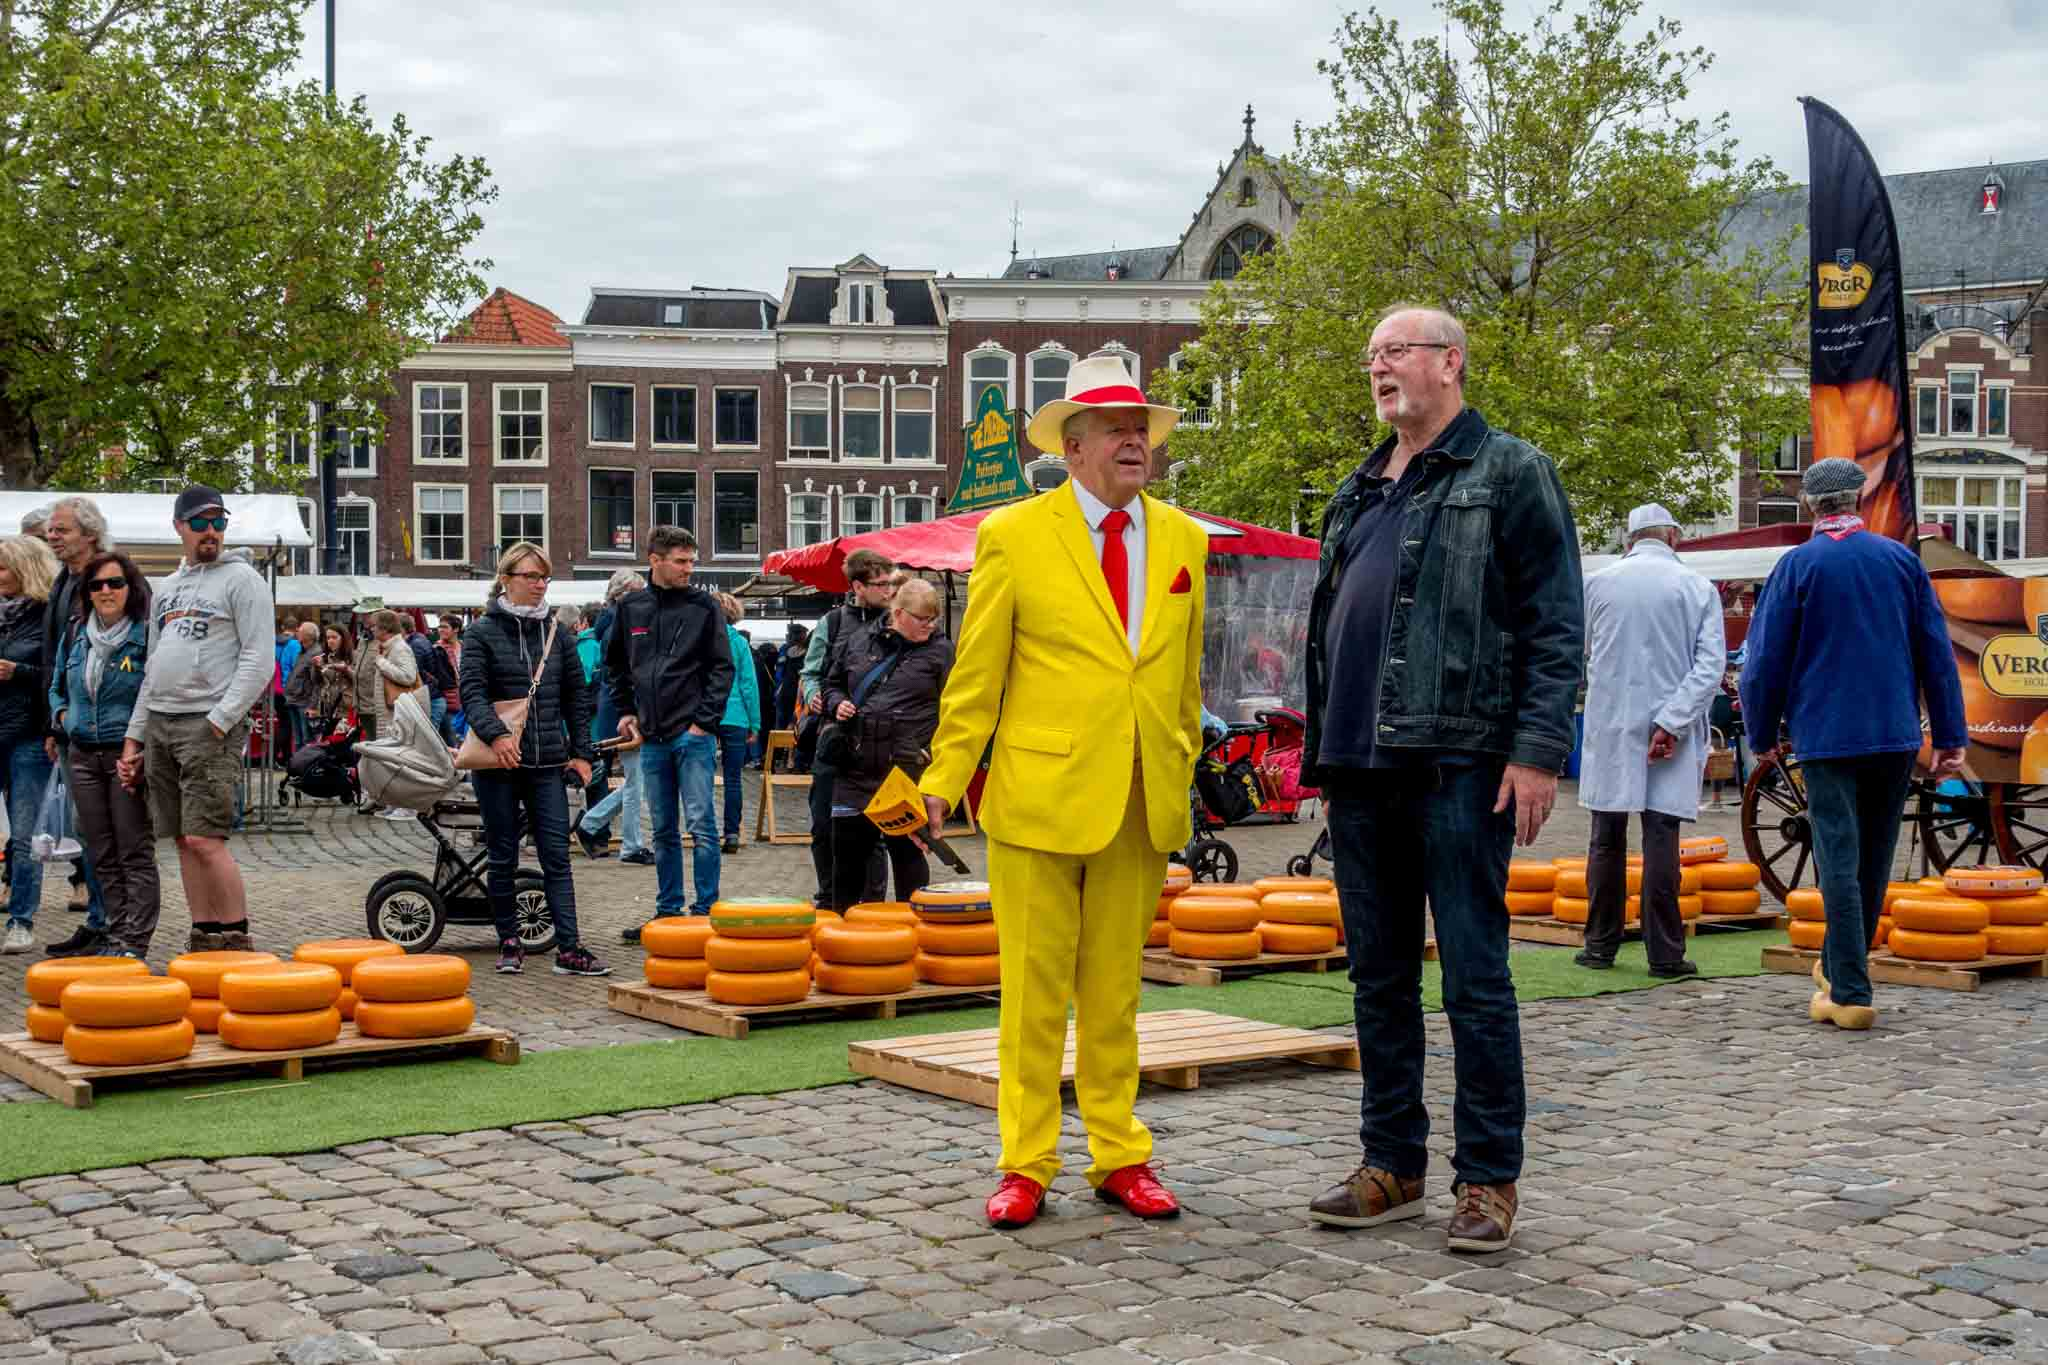 The emcee in a bright yellow suit narrates the Dutch Gouda cheese market Netherlands